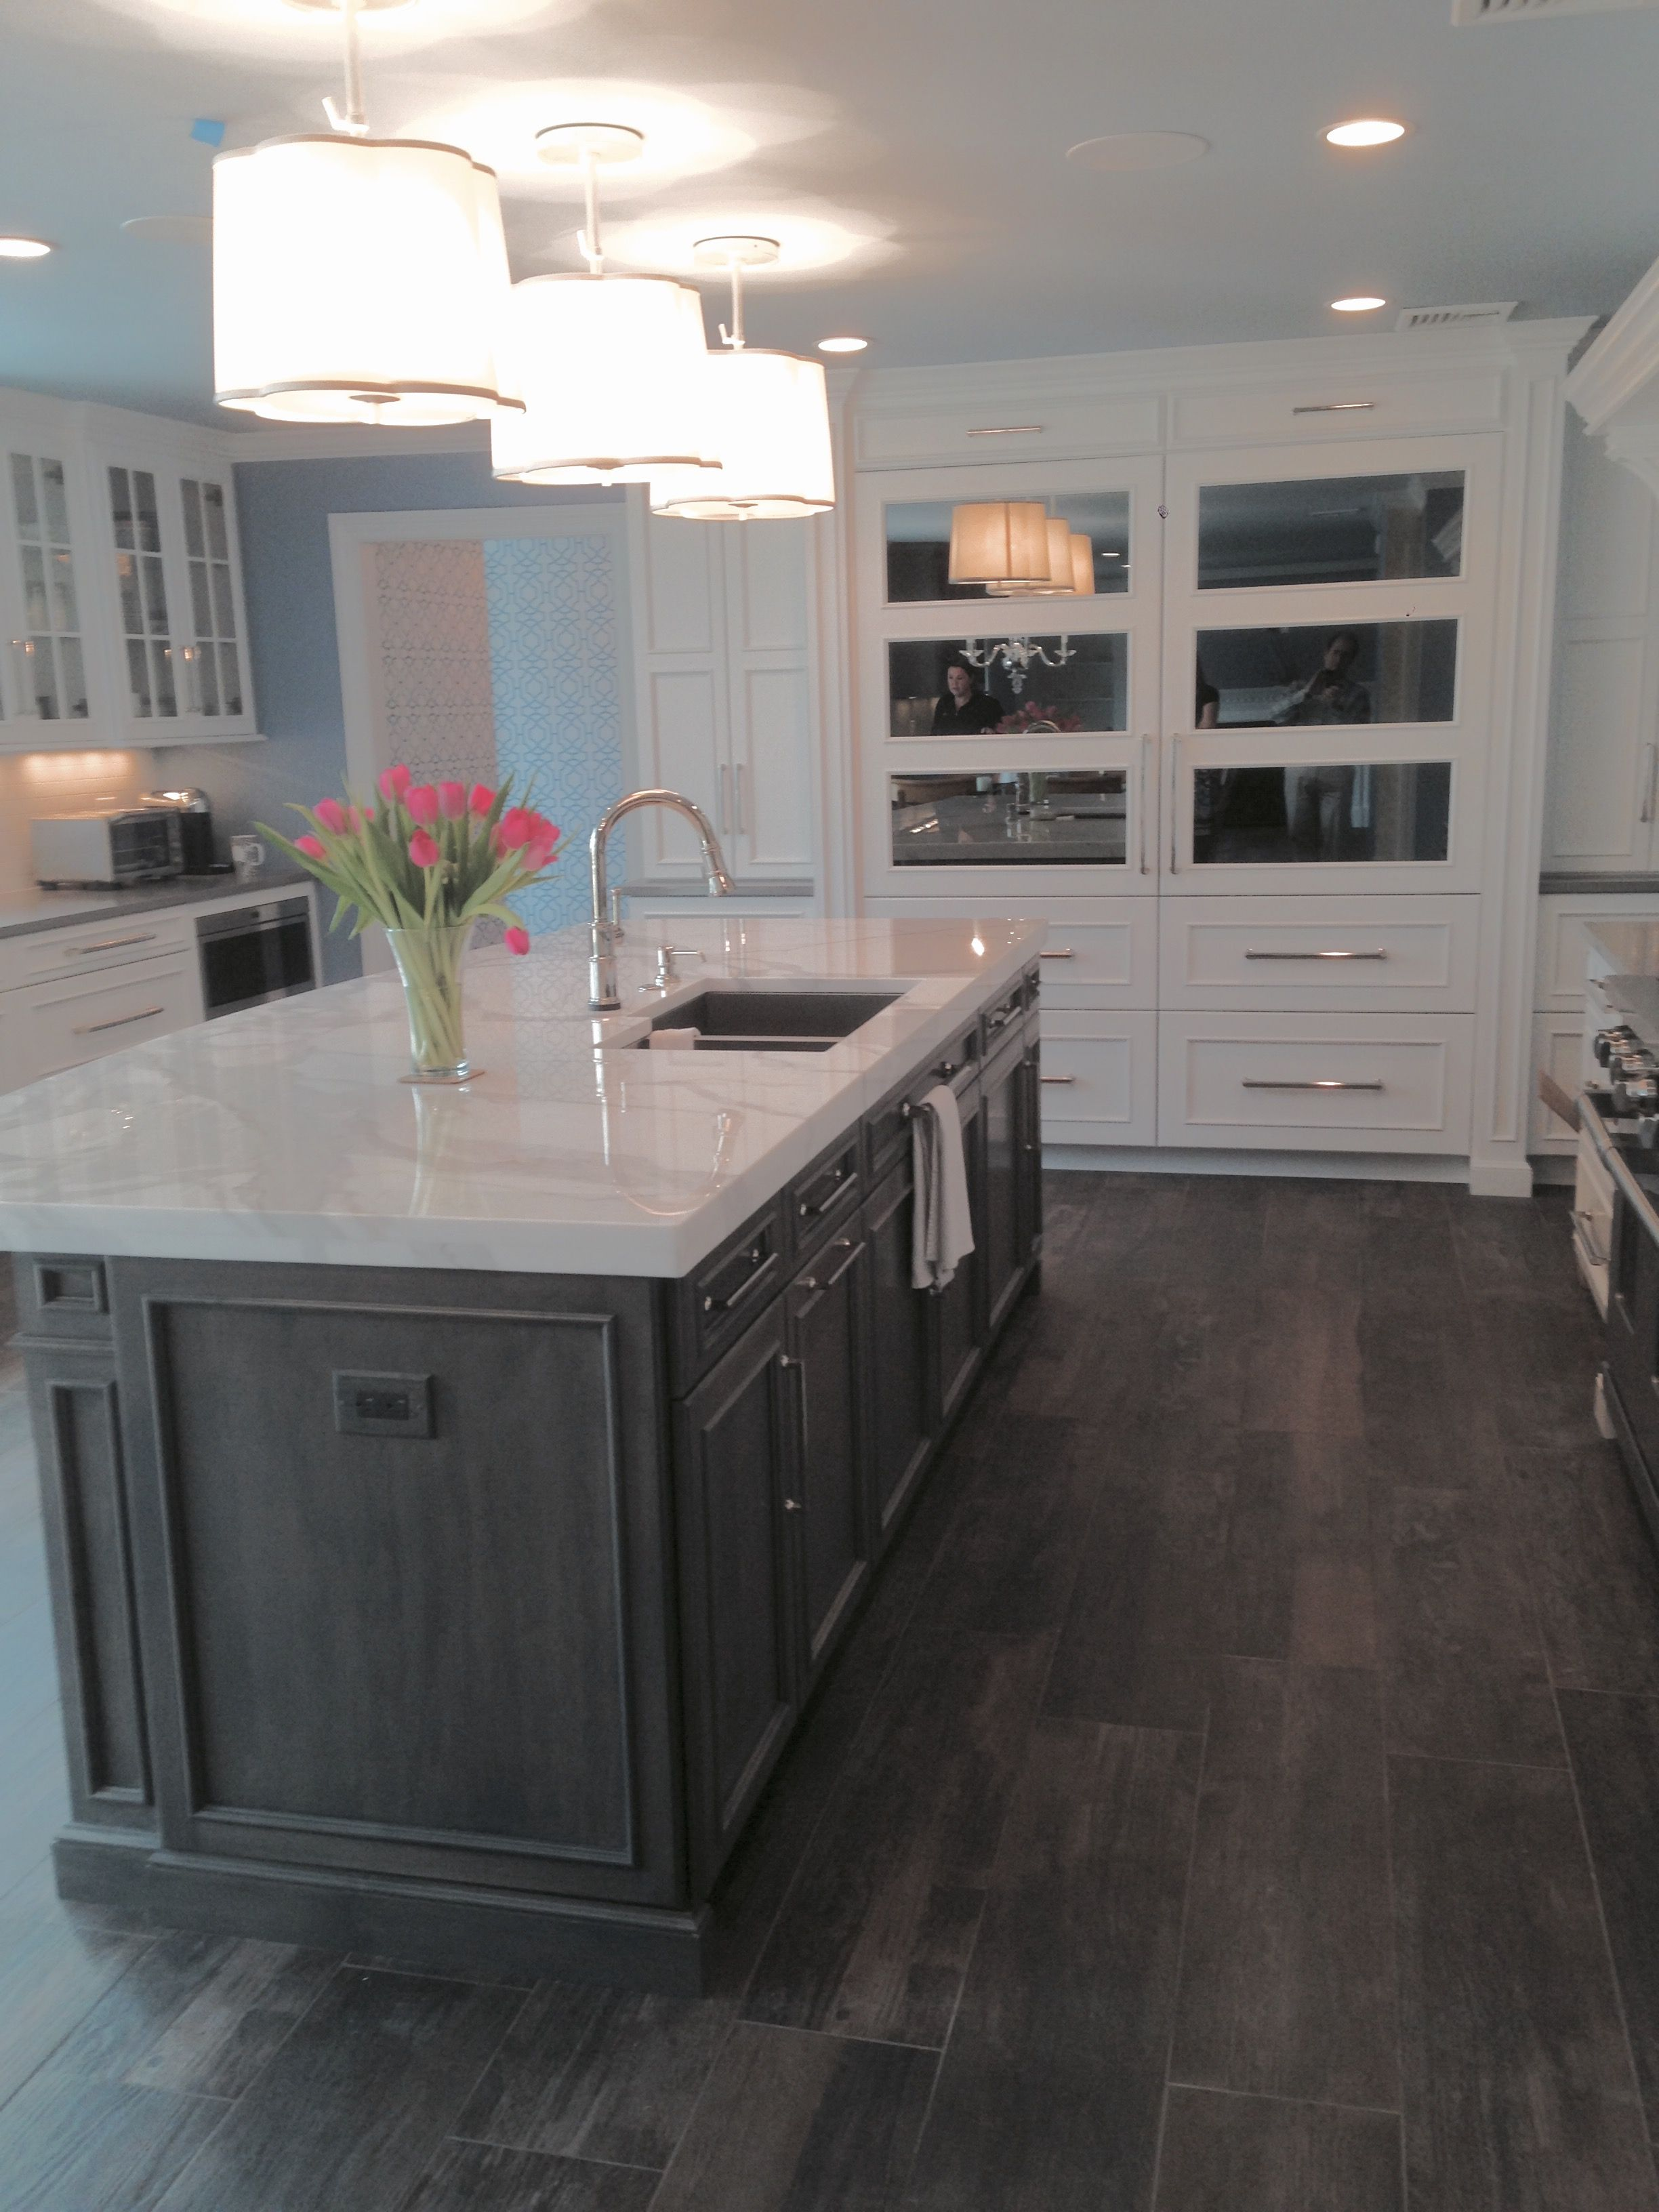 Peter salerno inc design portfolio transitional kitchen with over 30 national awards since peter salerno inc is one of the top design firms in north america dailygadgetfo Images